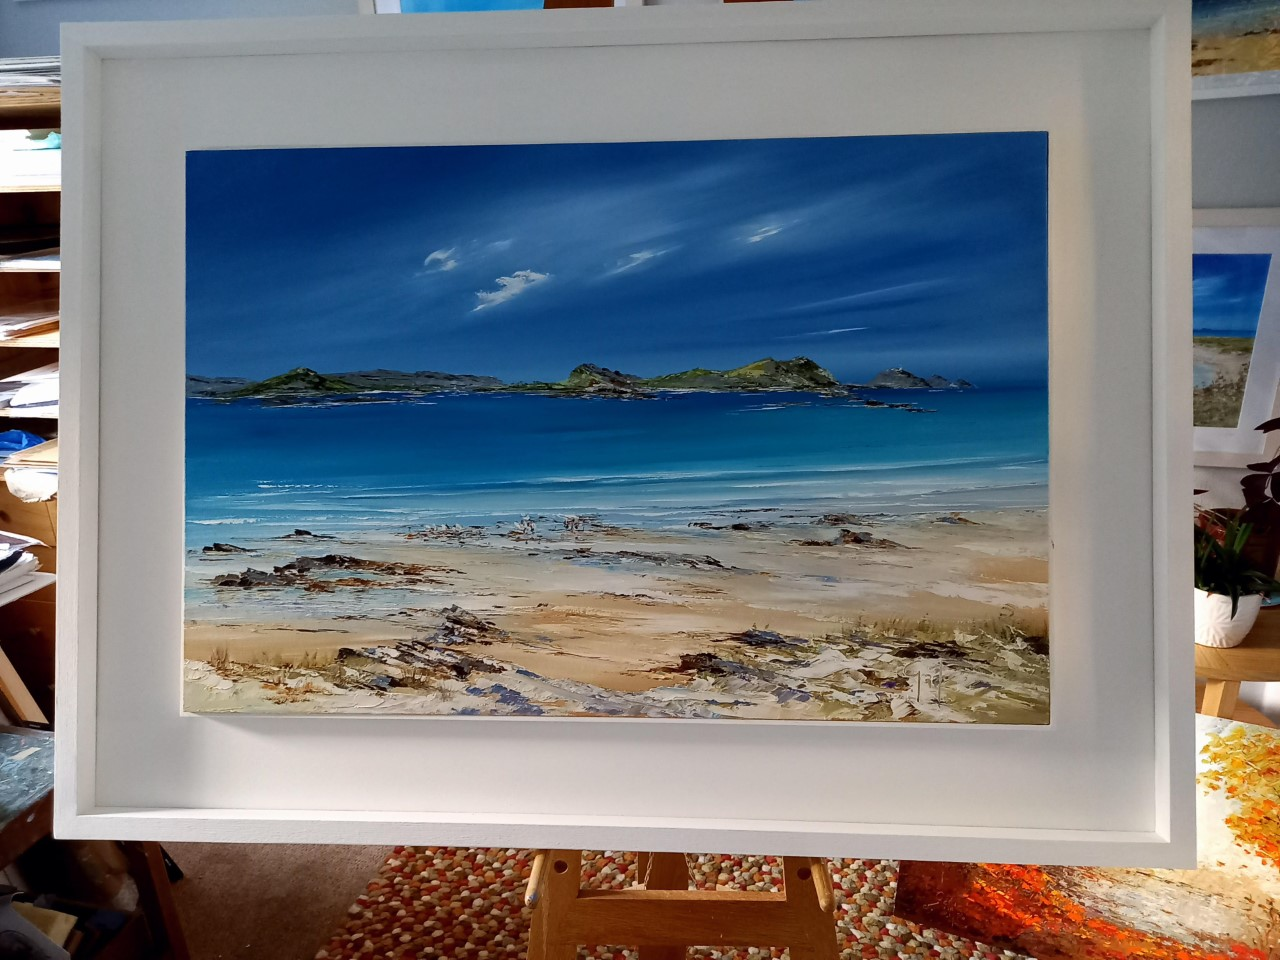 St Martins and Waders -St Martins Isles of Scilly  - Original Oil Painting now SOLD Prints are available from £45 - £135 contact gailmorrisart@hotmail.co.uk